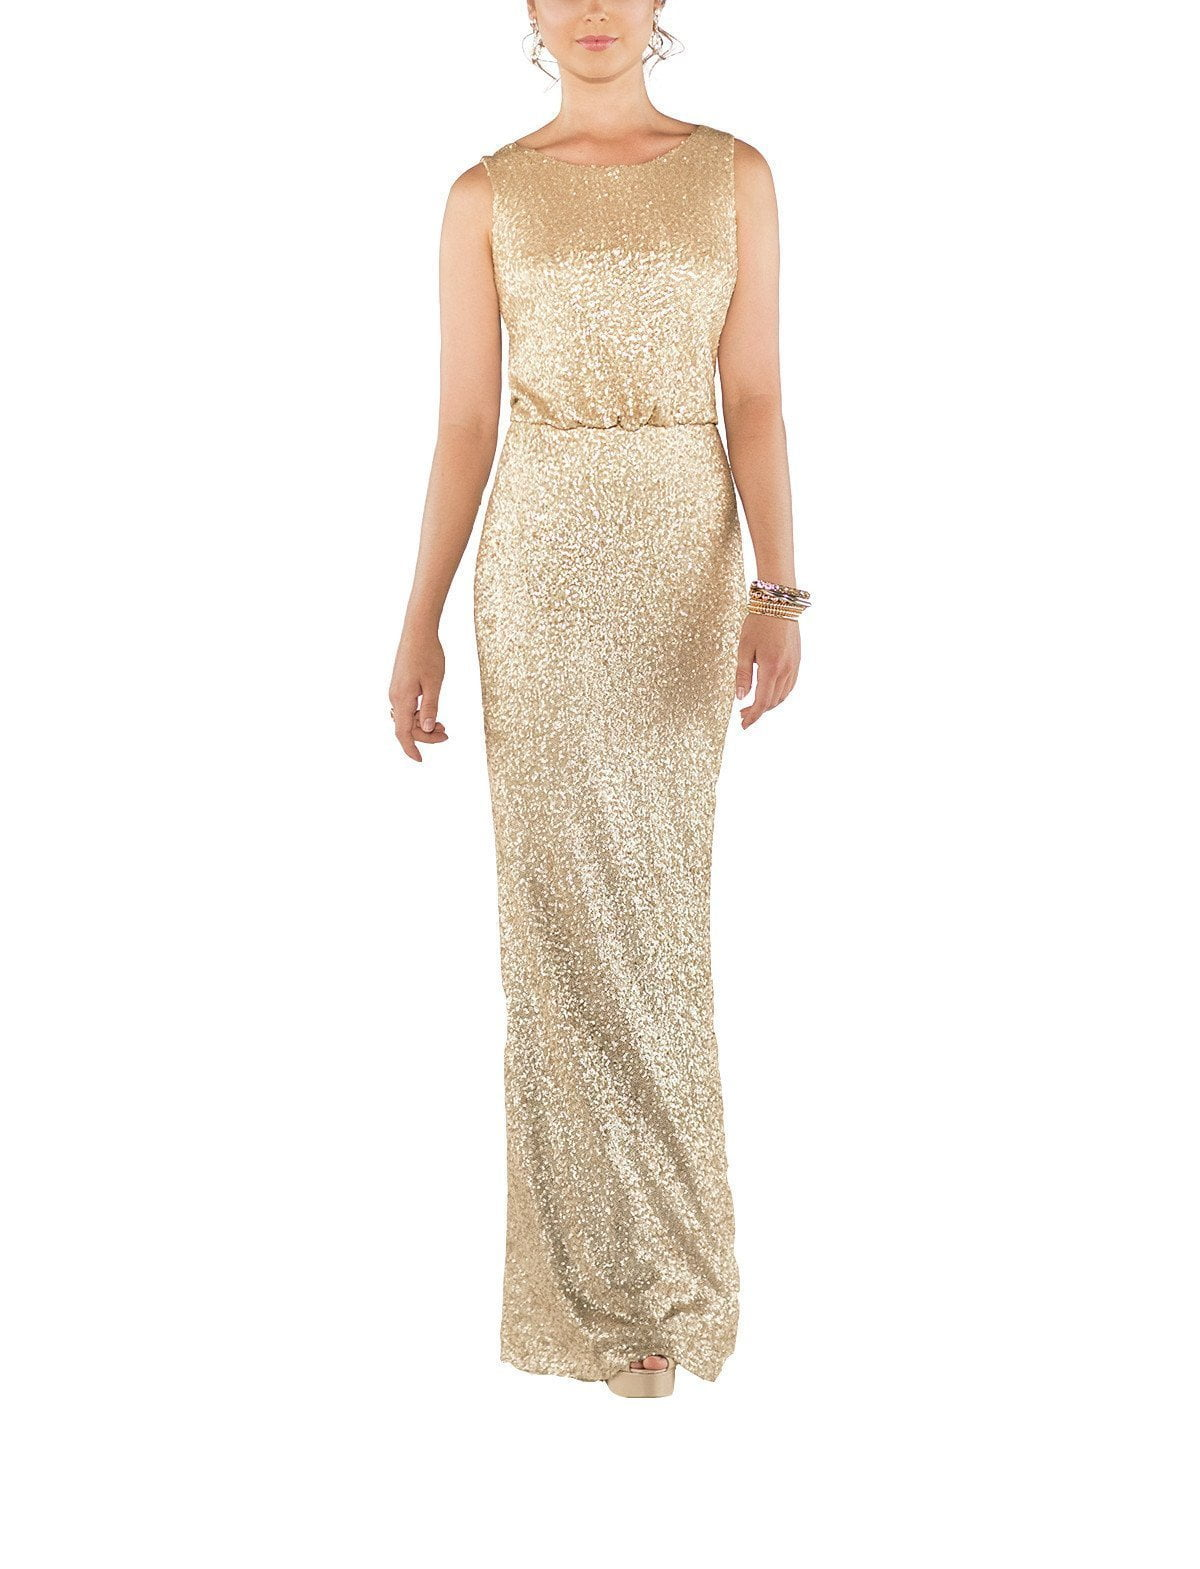 Sorella Vita Style 8824 in Gold Sequin